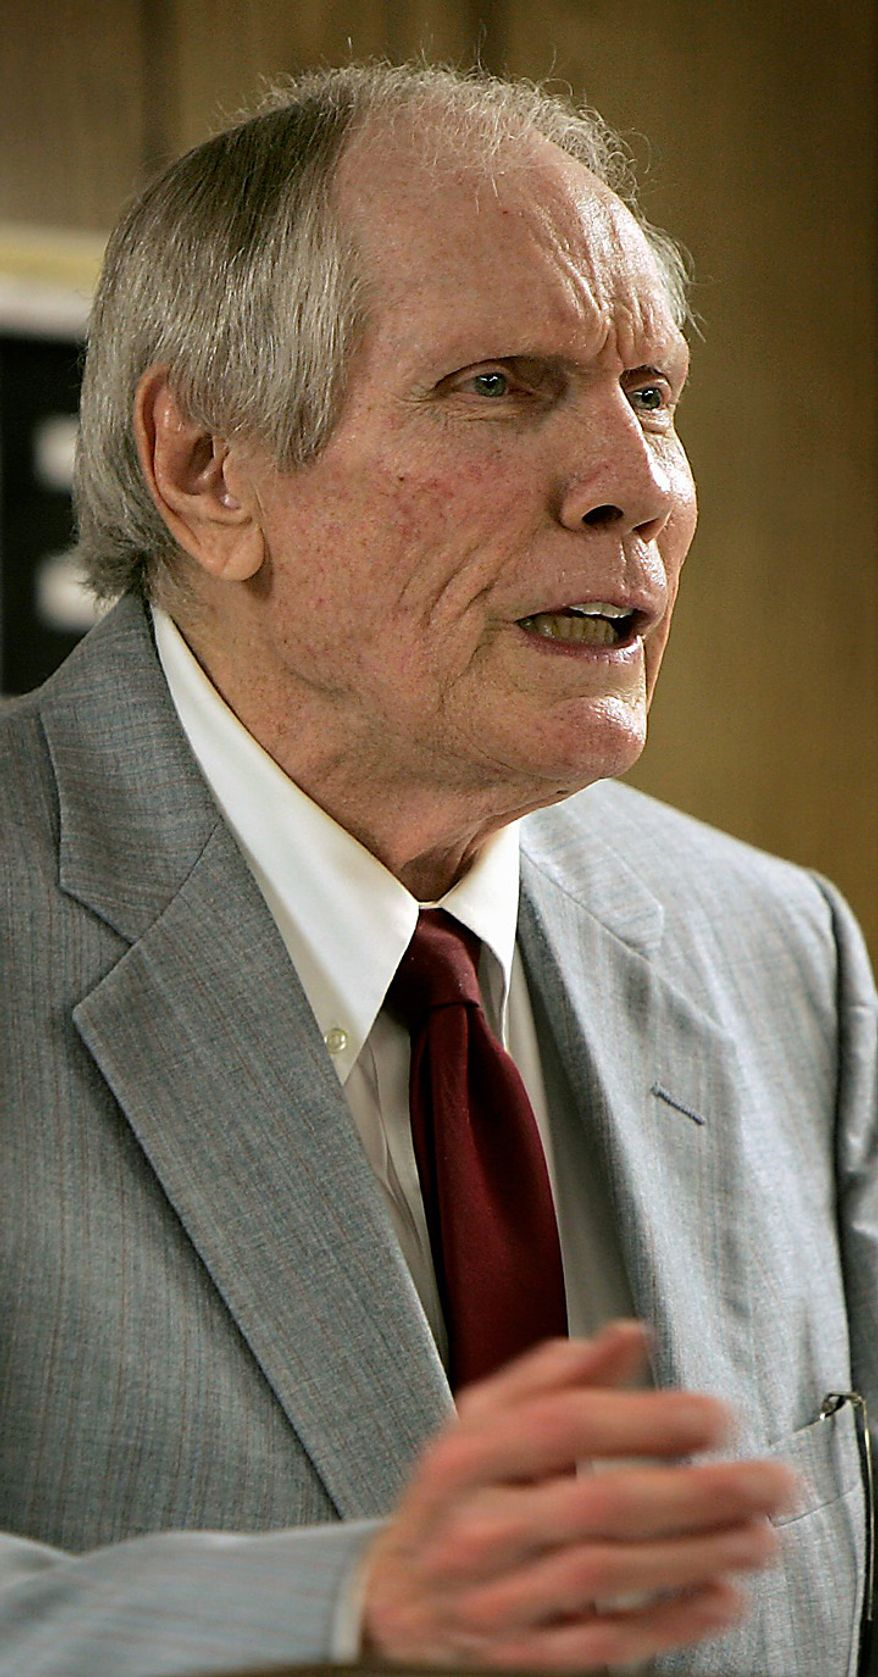 "In a March 19, 2006 file photo, Pastor Fred Phelps preaches at his Westboro Baptist Church in Topeka, Kan.  Albert Snyder of York, Pa., the father of a Marine killed in Iraq, is asking the Supreme Court to reinstate a $5 million verdict against members of the Westboro Baptist Church of Topeka, Kan., led by the Rev. Fred Phelps, who picketed his son's funeral with signs like ""Thank God for Dead Soldiers"" and ""God Hates the USA."" The U.S. Supreme Court is hearing arguments Wednesday, Oct. 6, 2010 in the dispute between Snyder and members of the Westboro Baptist Church. The case pits Snyder's right to grieve privately against the church members' right to say what they want, no matter how offensive. (AP Photo/Charlie Riedel, File)"